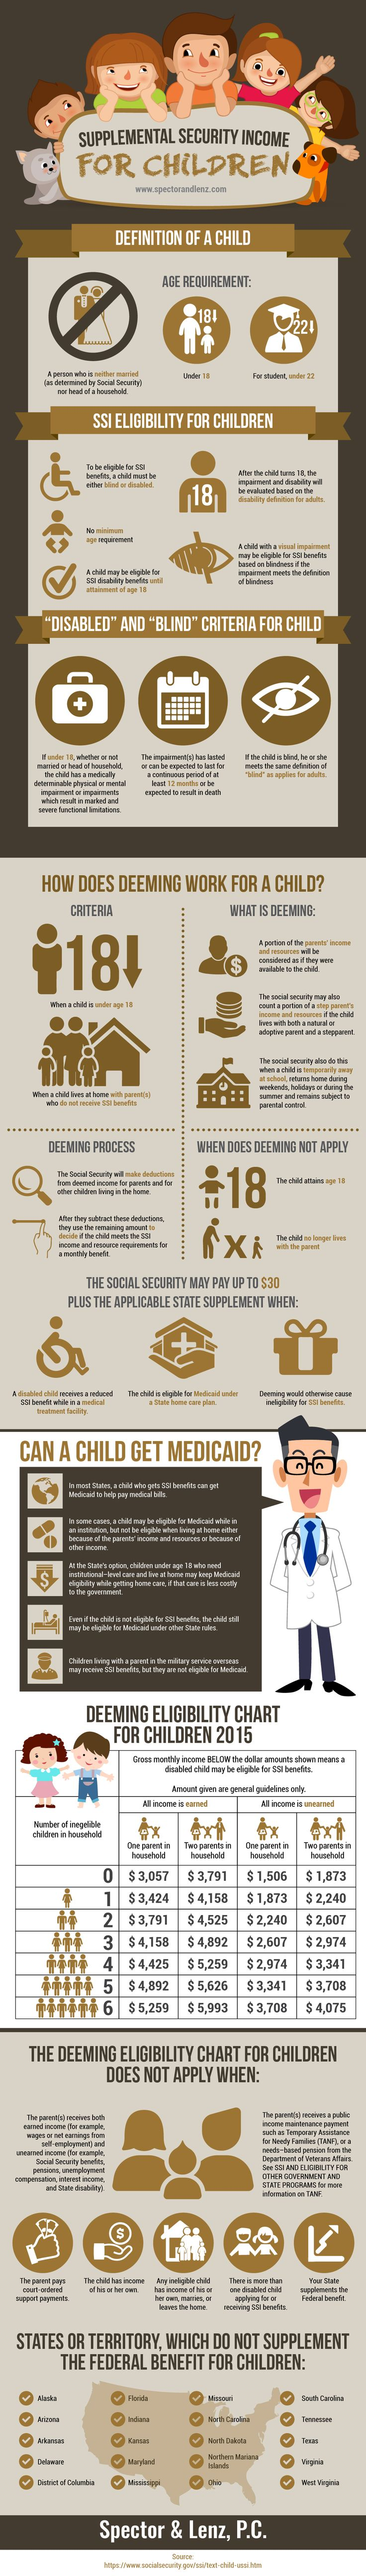 To be eligible for SSI benefits, a child must be either blind or disabled. A child may be eligible for SSI disability benefits until attainment of age 18. After the child turns 18, the impairment and disability will be evaluated based on the disability definition for adults. See supplemental security income infographic for children by Spector & Lenz, P.C.